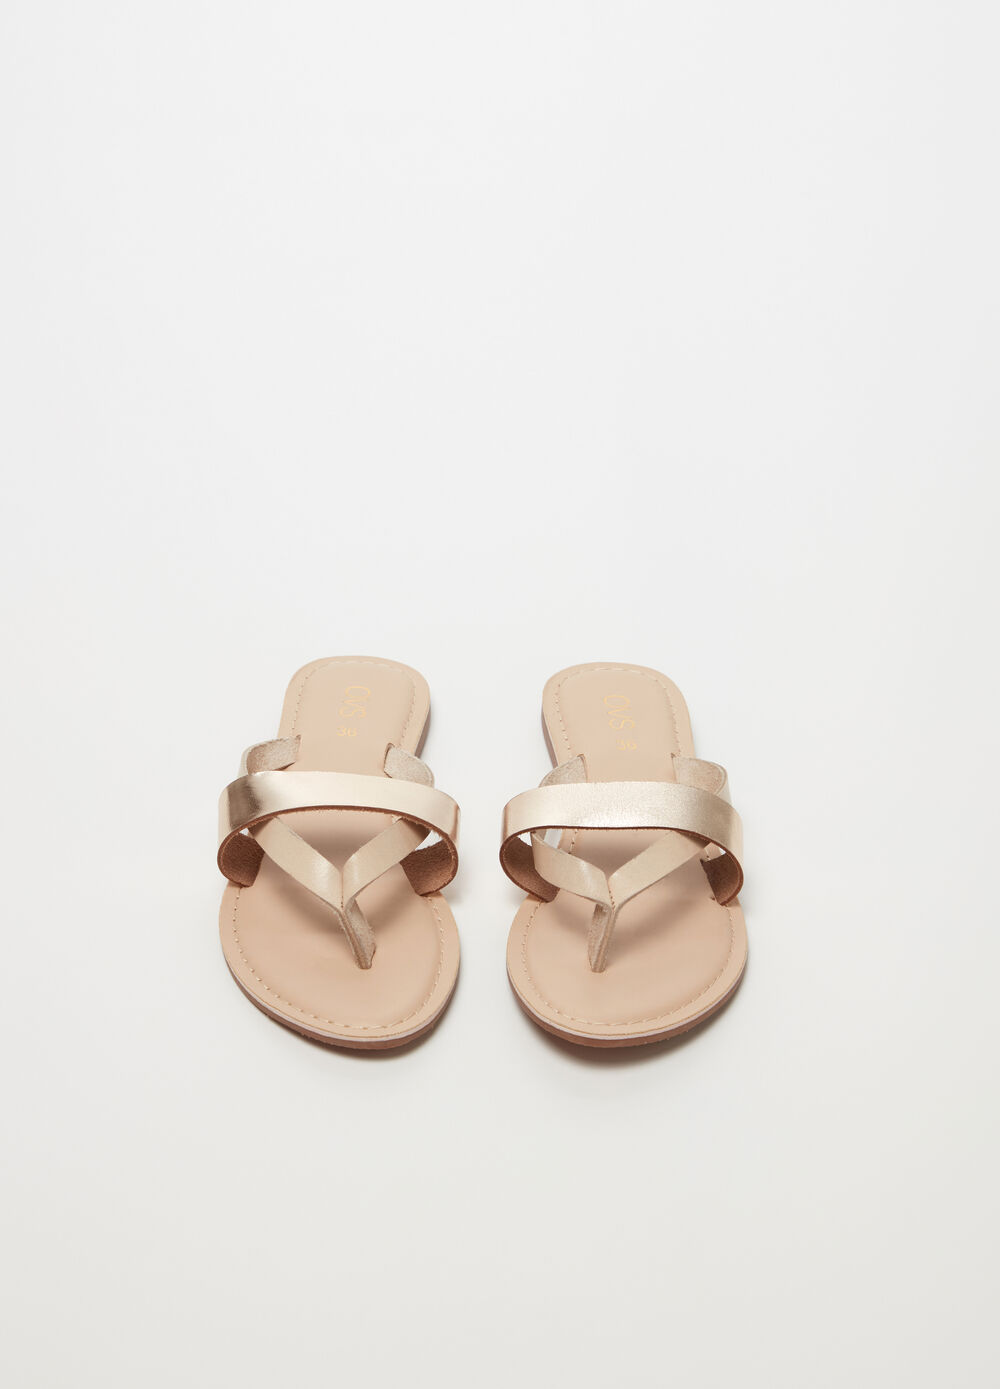 Thong sandals with shiny-effect strap